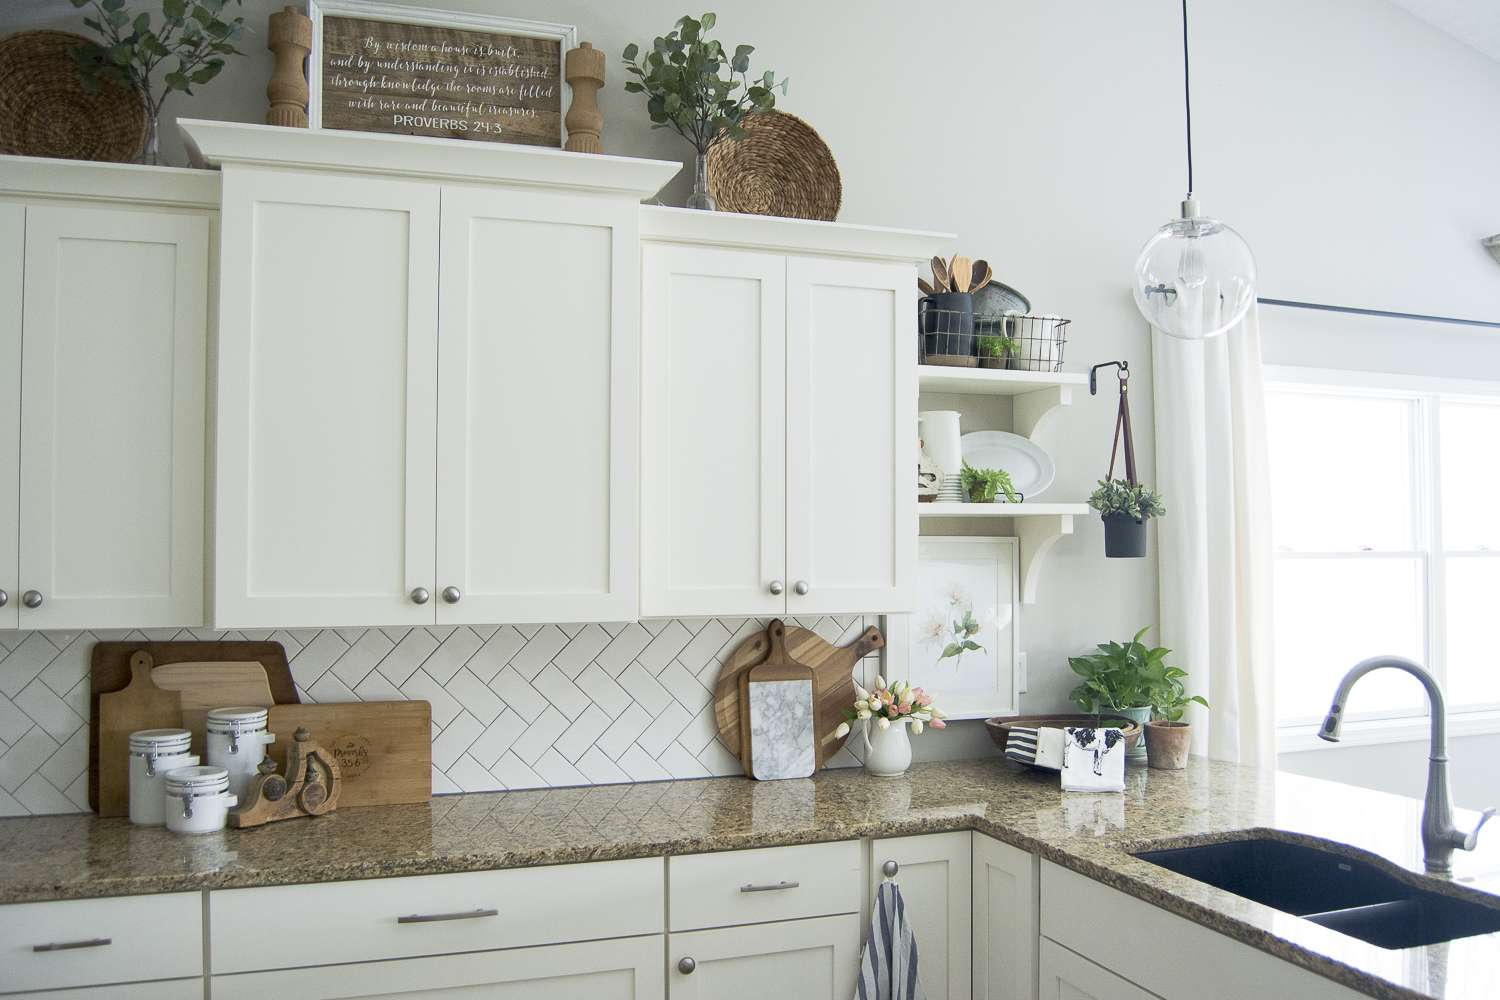 Are You Looking For Pretty And Practical Spring Kitchen Decor Ideas Here Some Sure